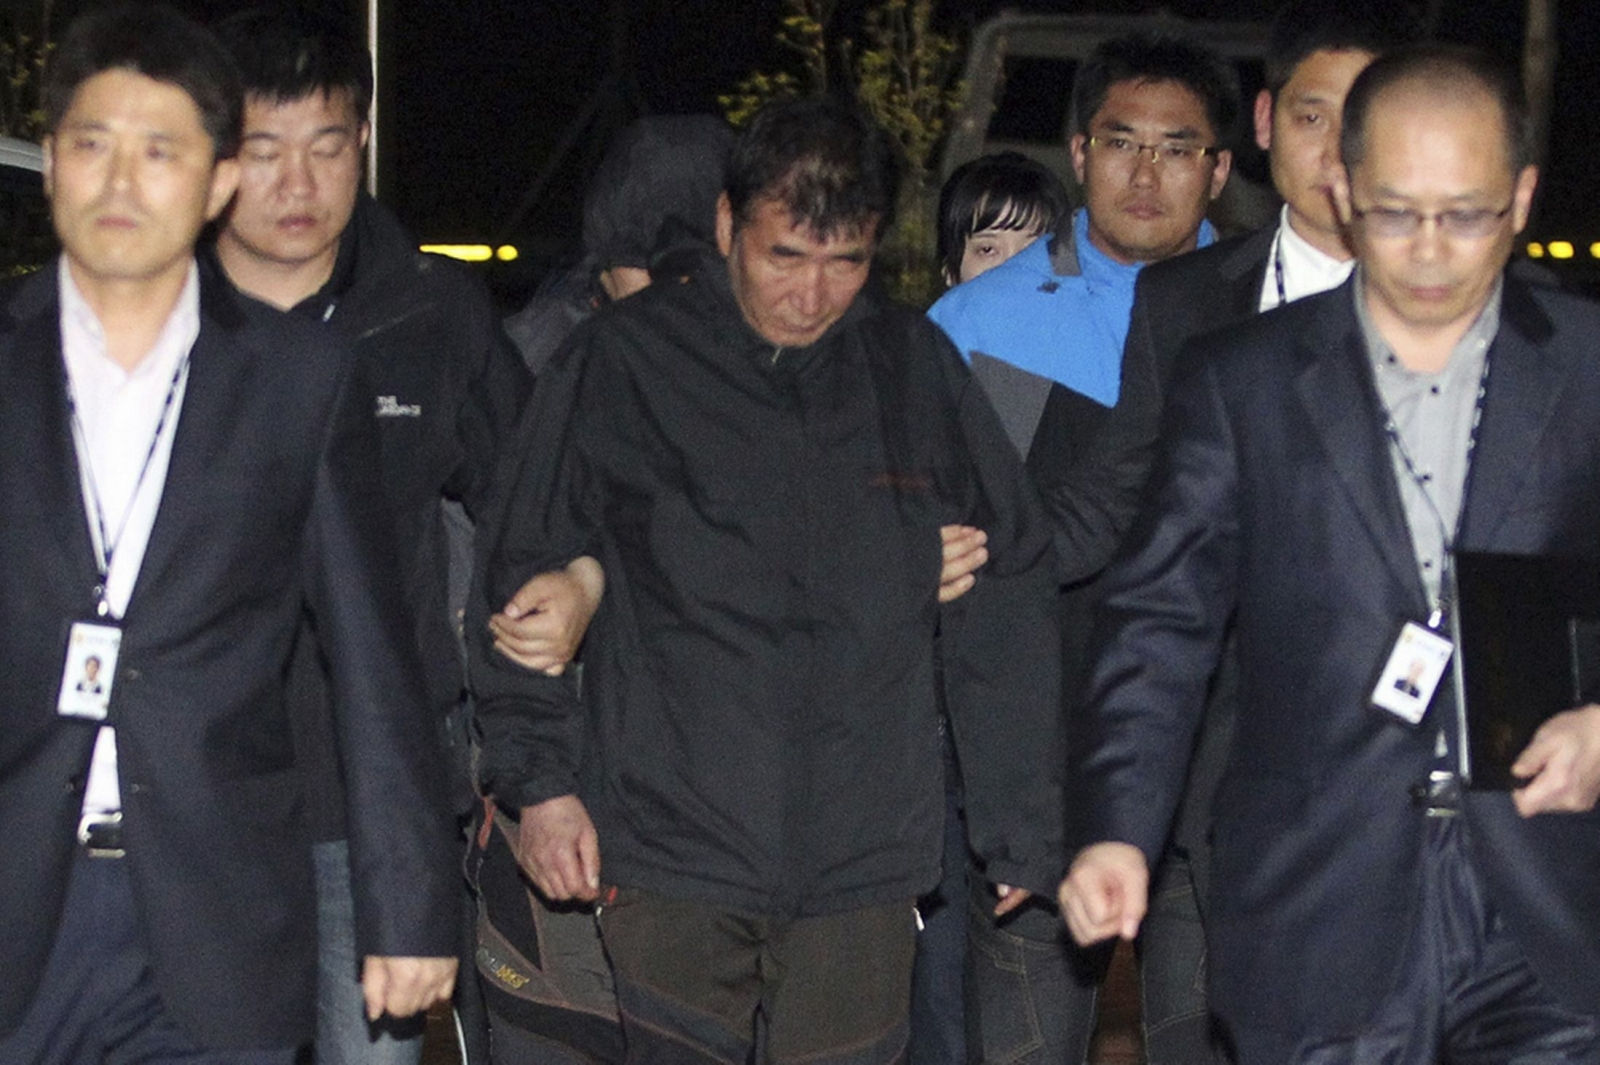 South Korea: Sewol Ferry Captain Lee Joon-seok Dodges Death Sentence